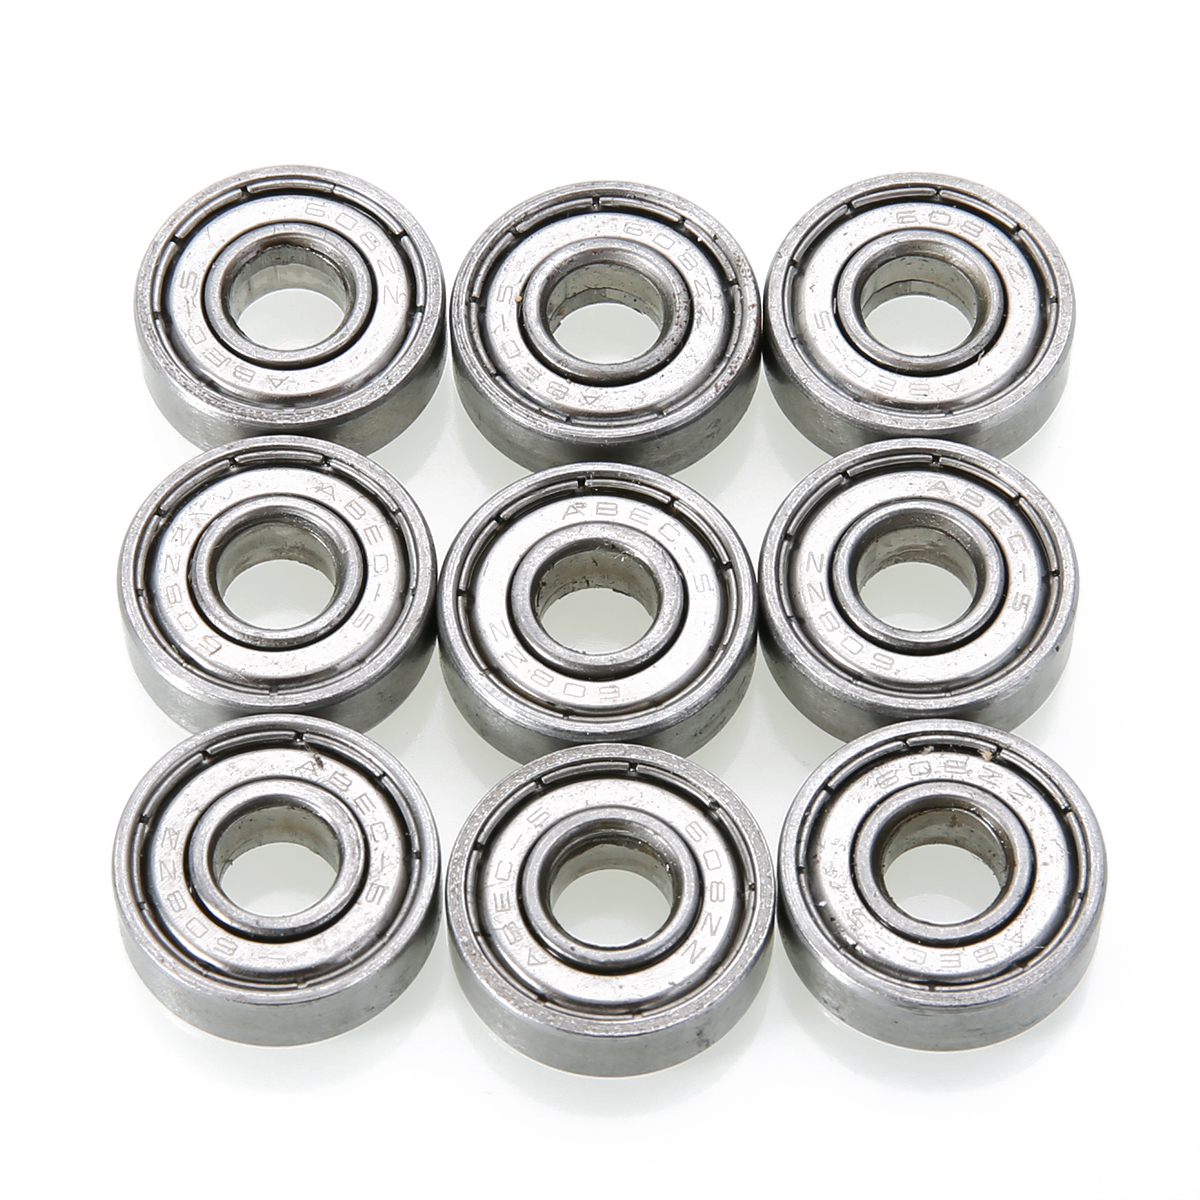 10pcs 608zz Deep Groove Bearings Carbon Steel Ball Bearing DIY Hardware Accessories